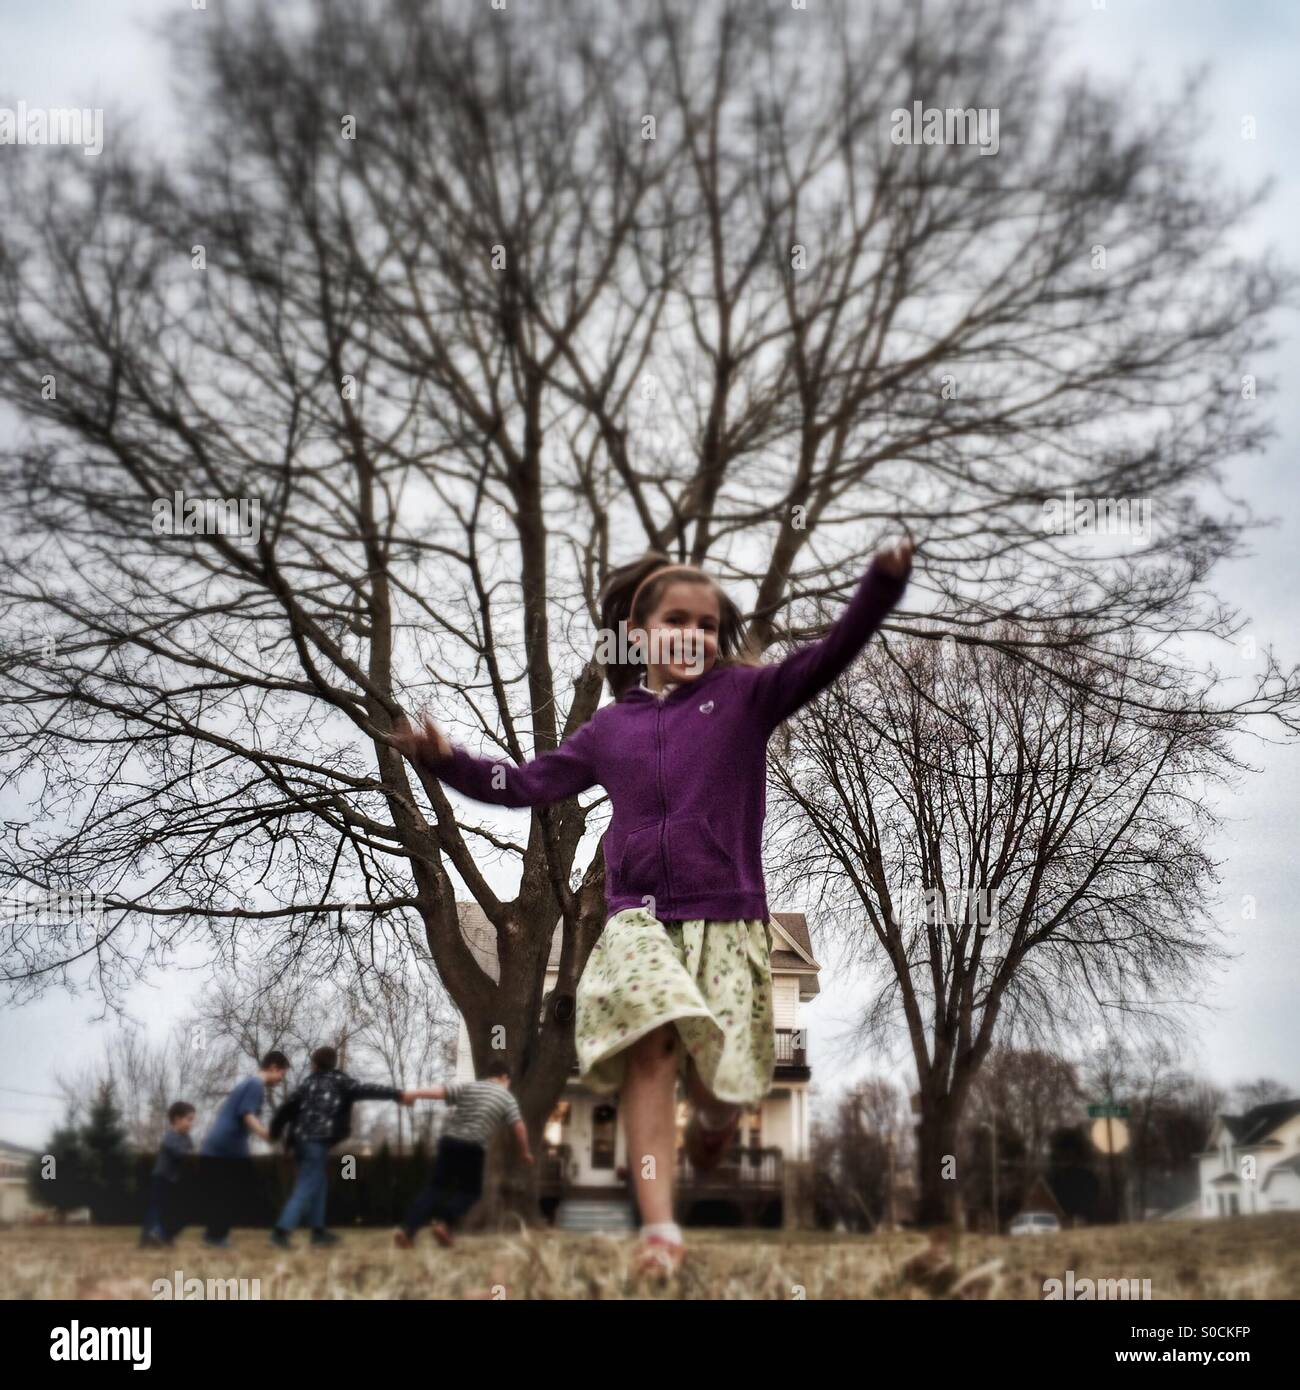 Smiling girl running through the yard, with children playing behind her; springtime fun - Stock Image